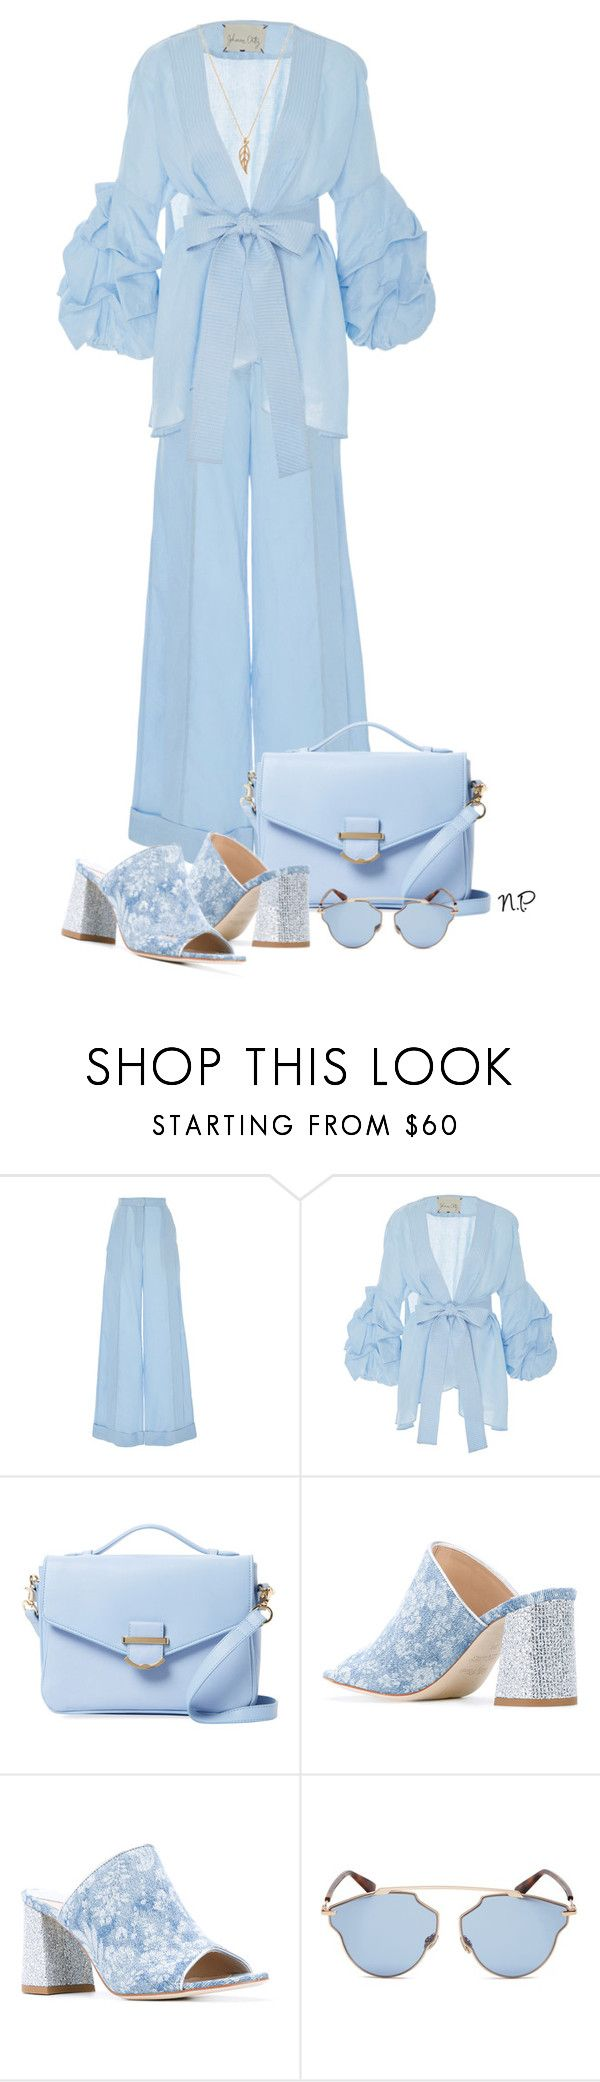 """Blau Cel"" by nuria-pellisa-salvado ❤ liked on Polyvore featuring Johanna Ortiz, Cynthia Rowley, Polly Plume, Christian Dior, StreetChic and johannaortiz"